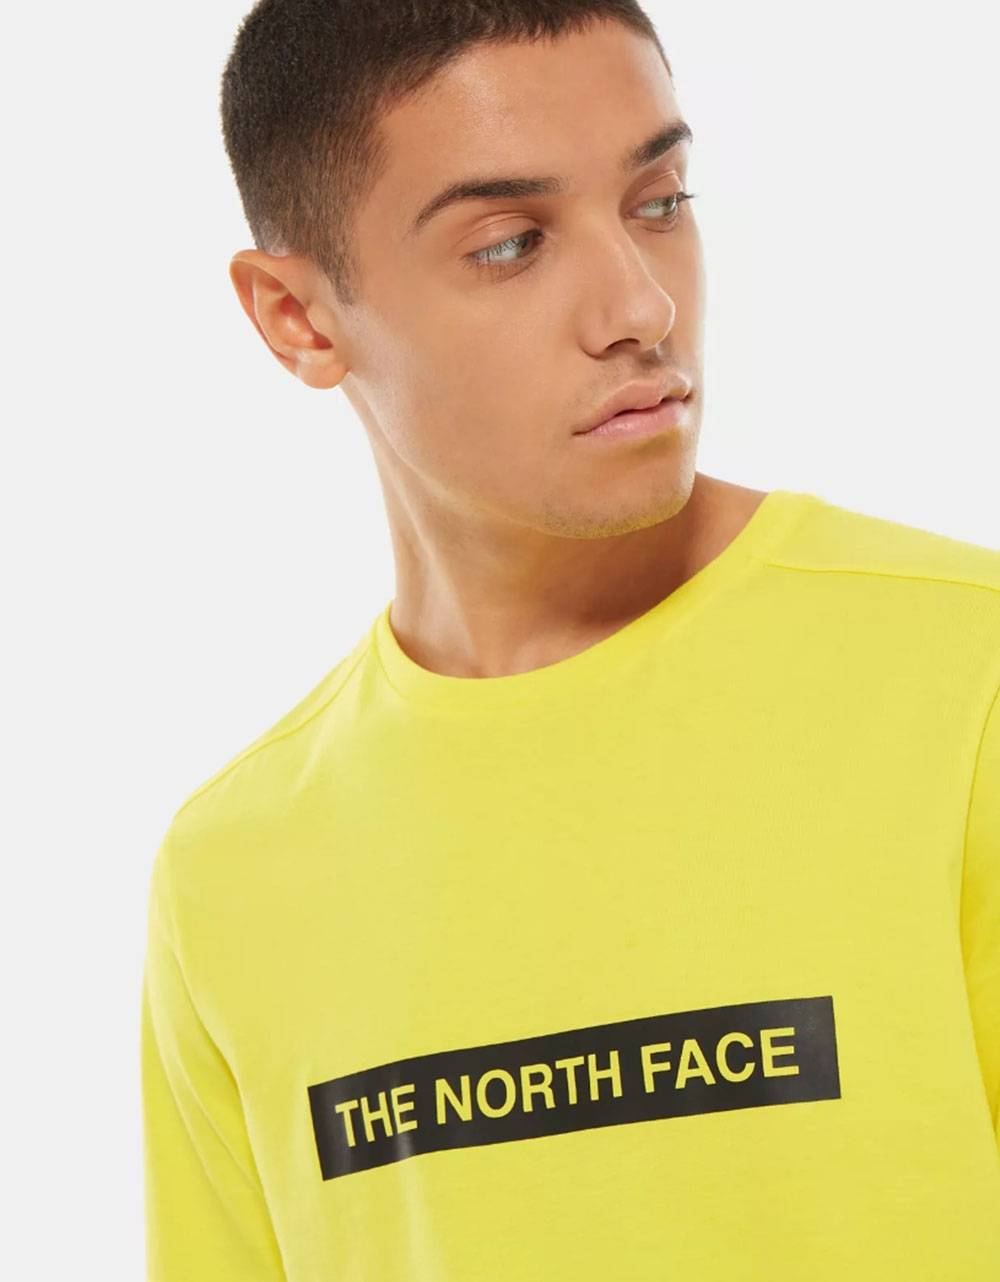 The North Face Light tee - tnf lemon THE NORTH FACE T-shirt 40,00€